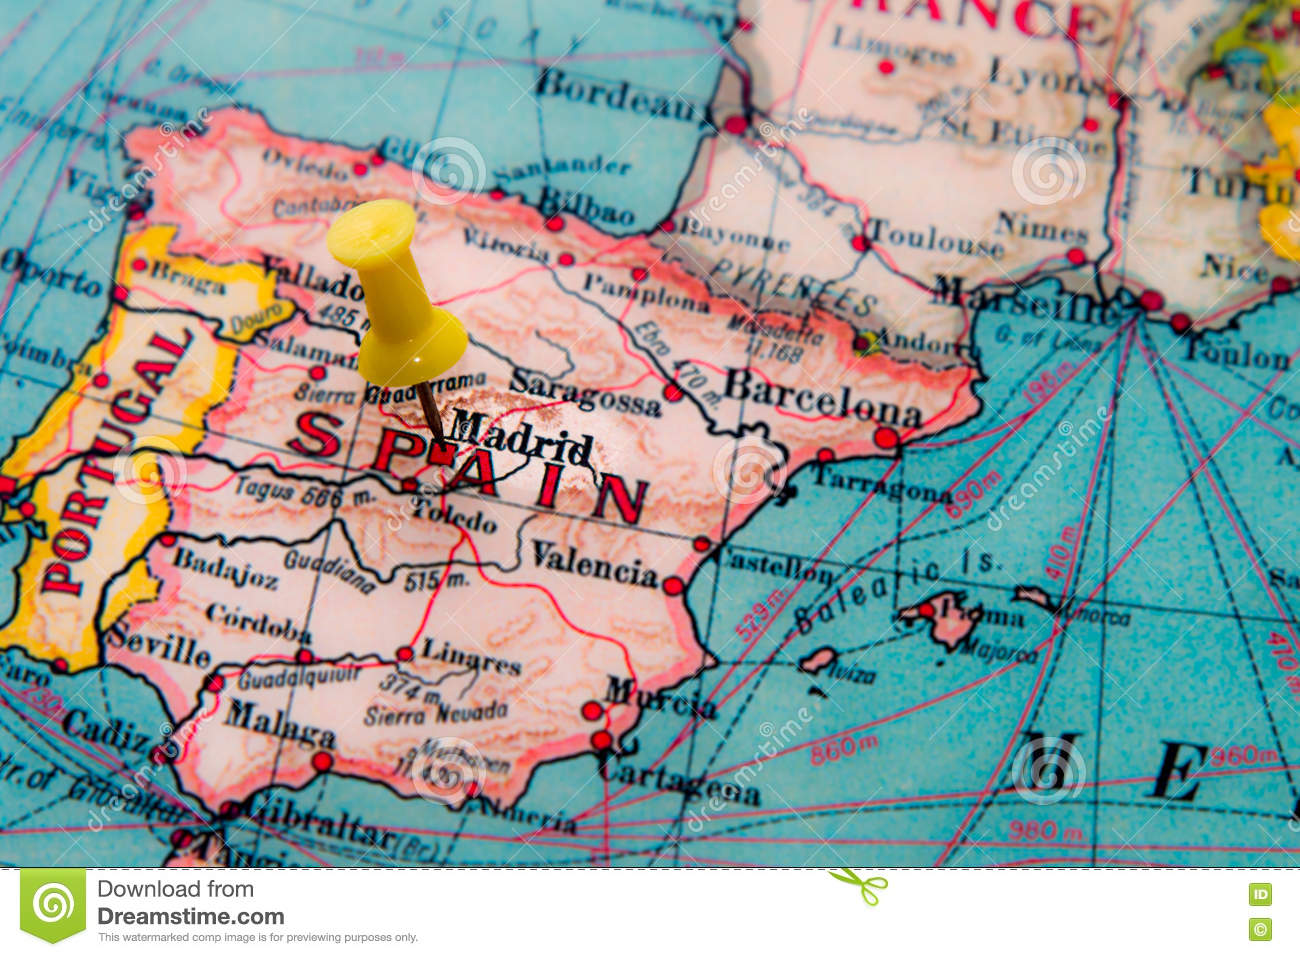 Spain Map Of Europe.Madrid Spain Pinned On Vintage Map Of Europe Stock Image Image